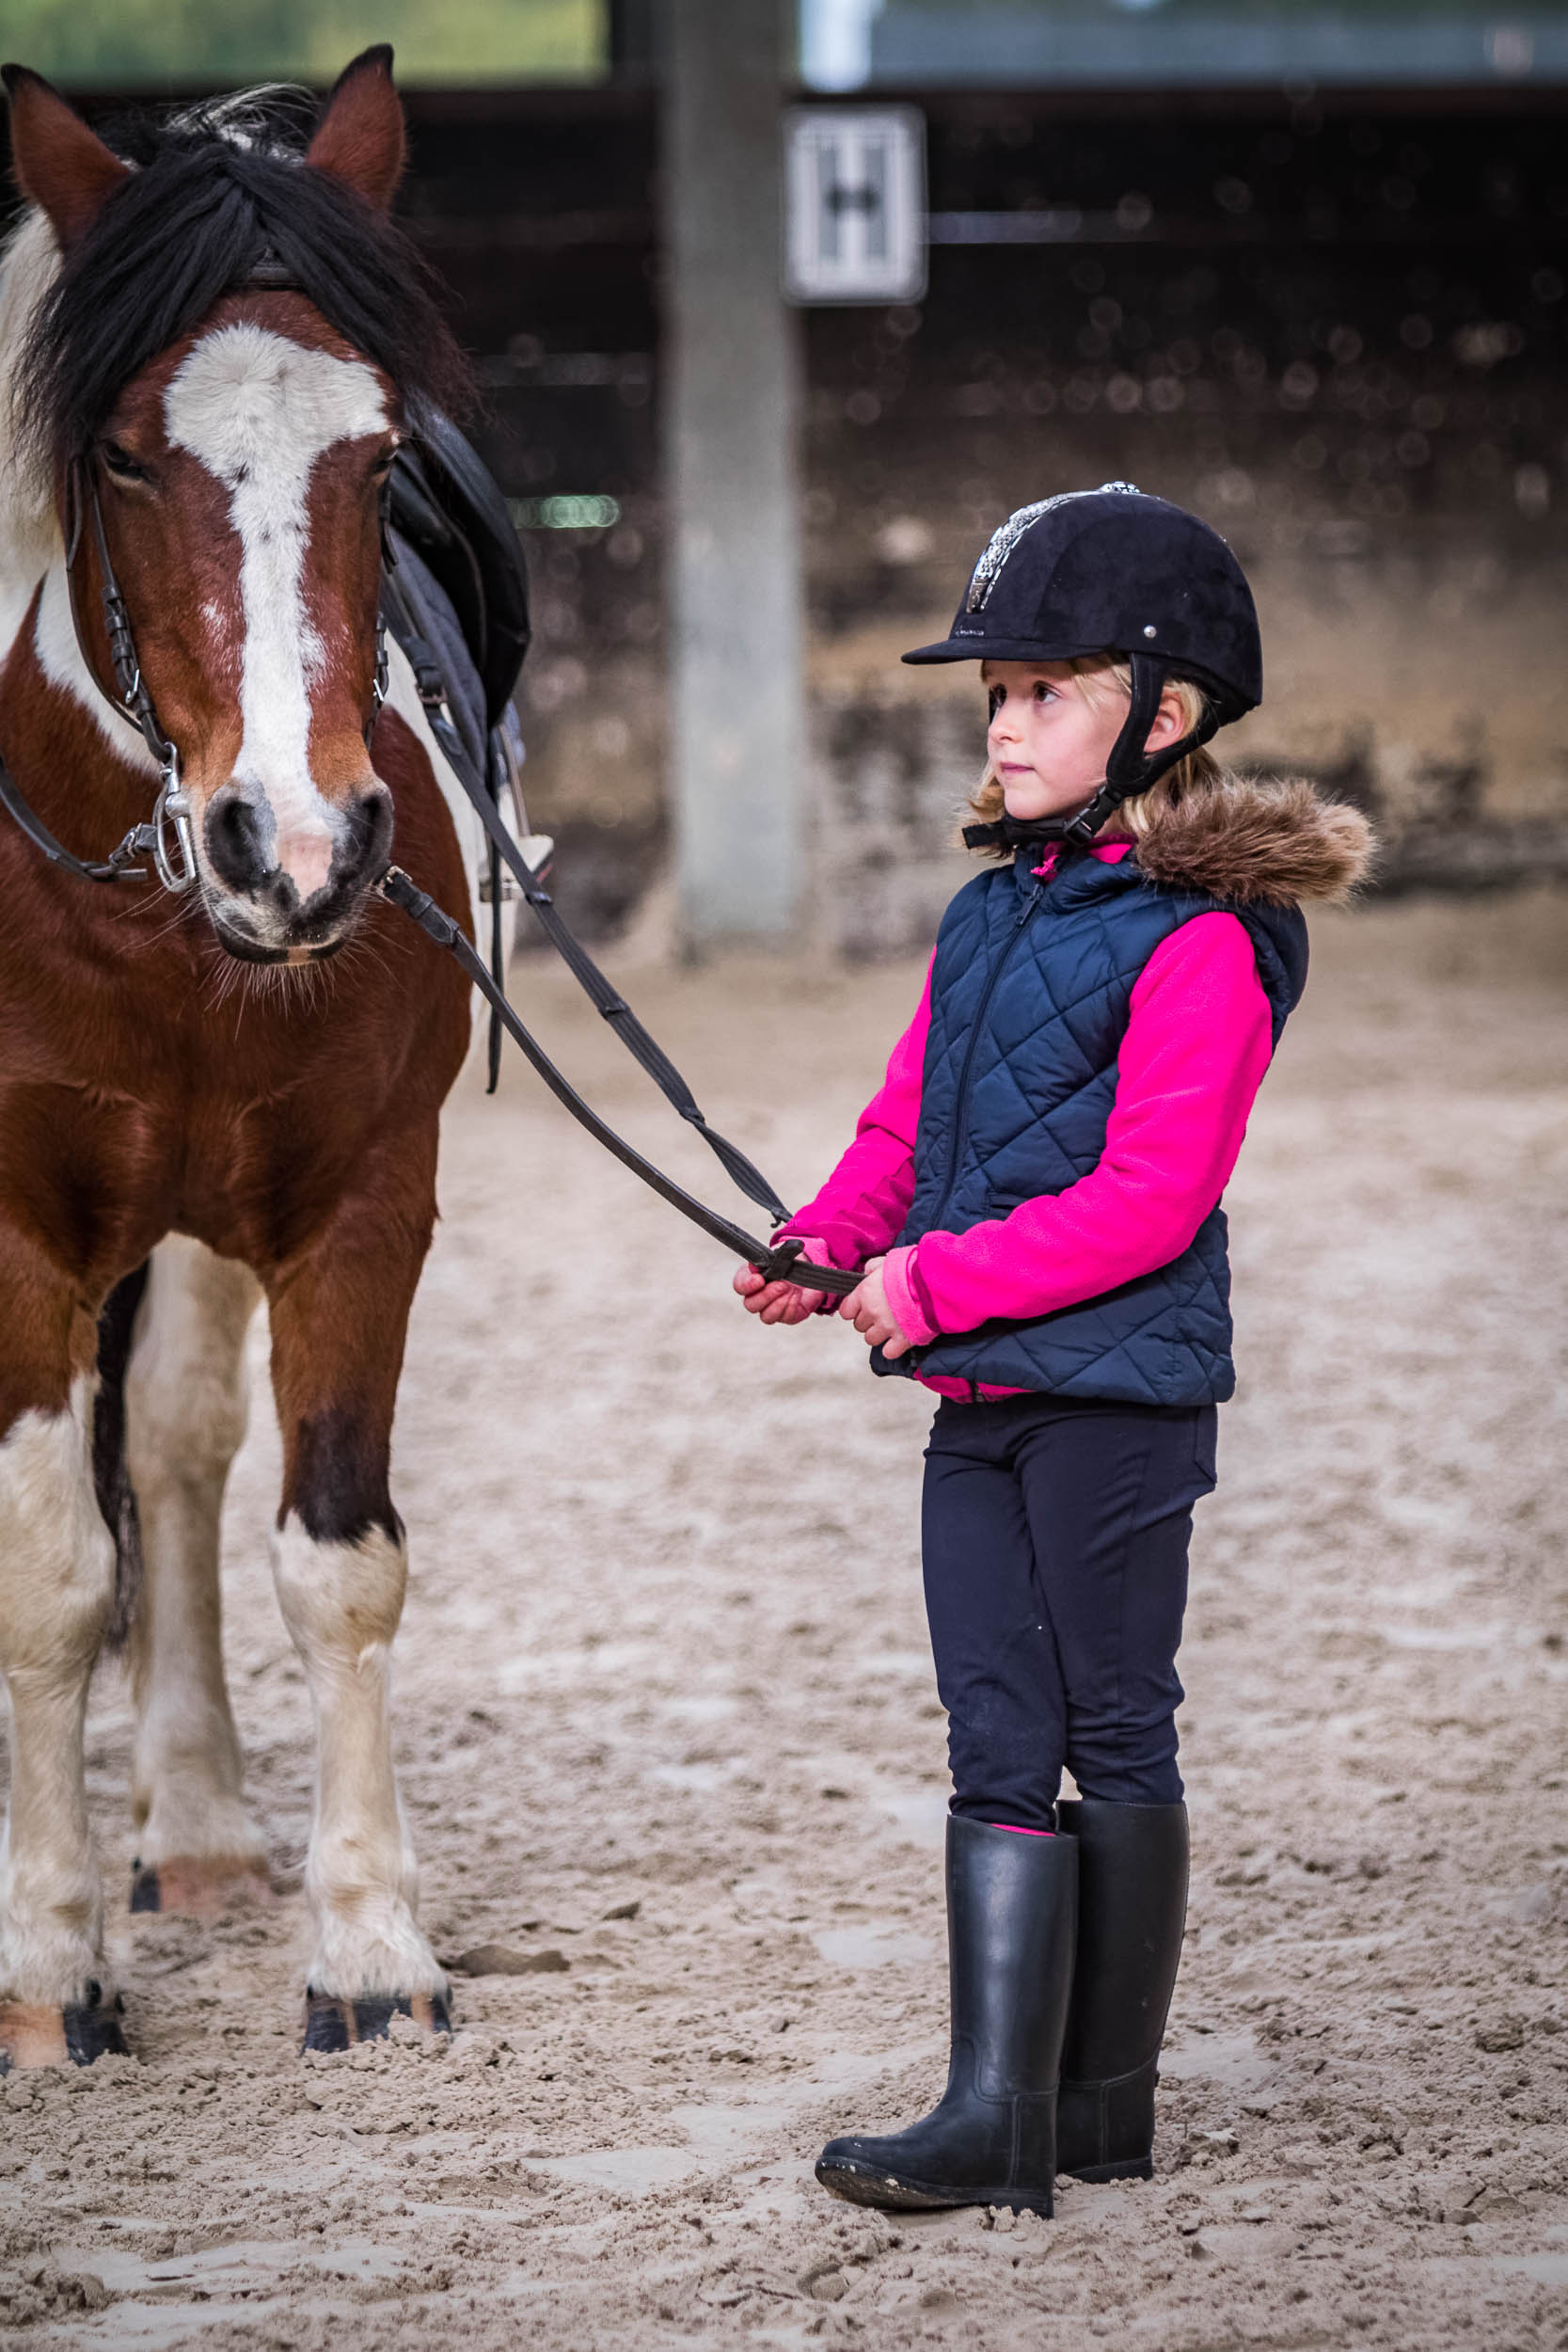 Little girl doing horse riding. Photo taken by a Brussels photog